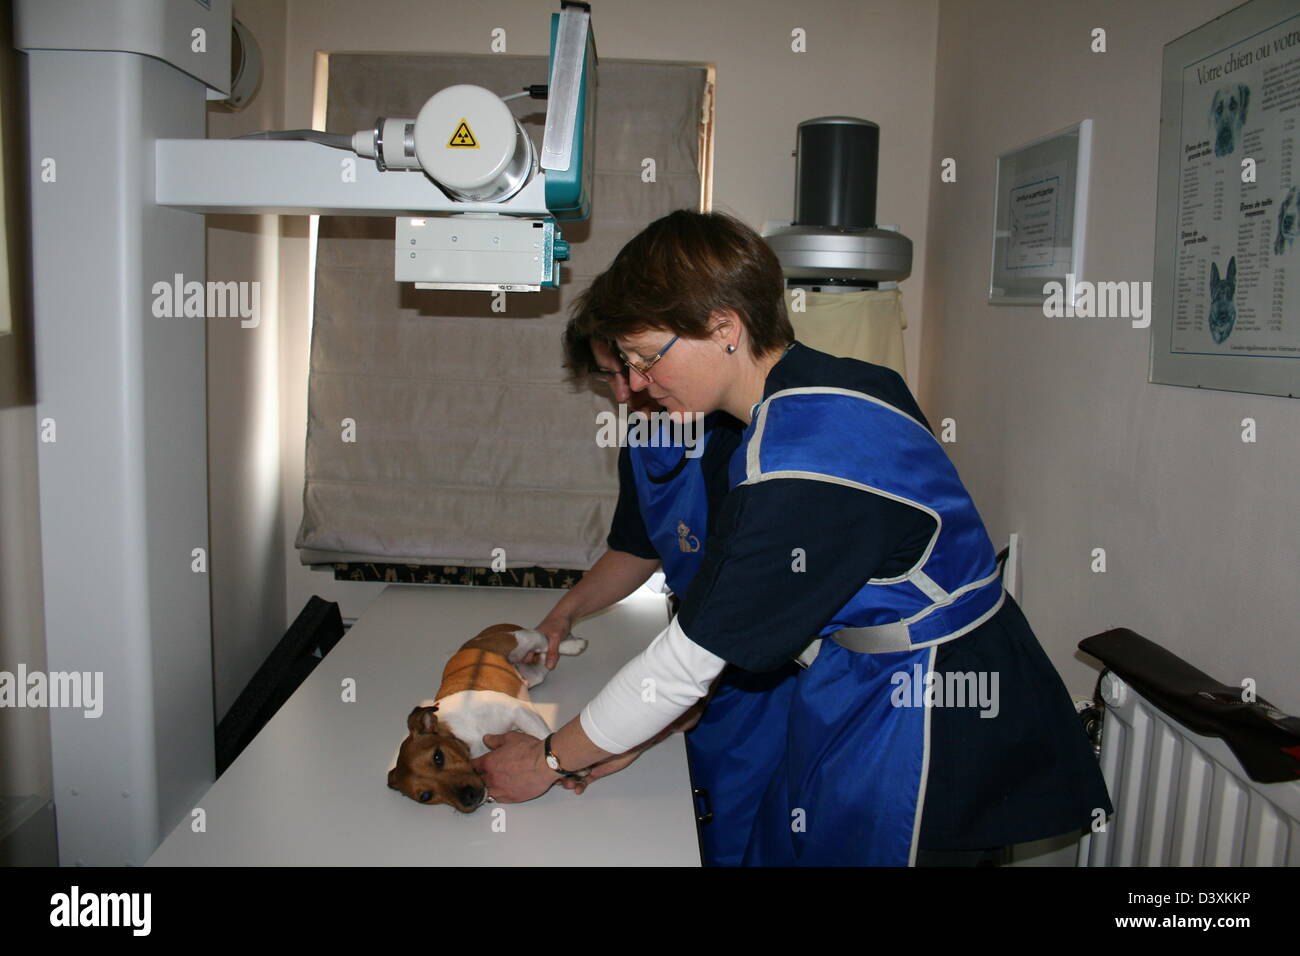 A Jack Russel Terrier dog receiving an x-ray by a veterinarian Stock Photo